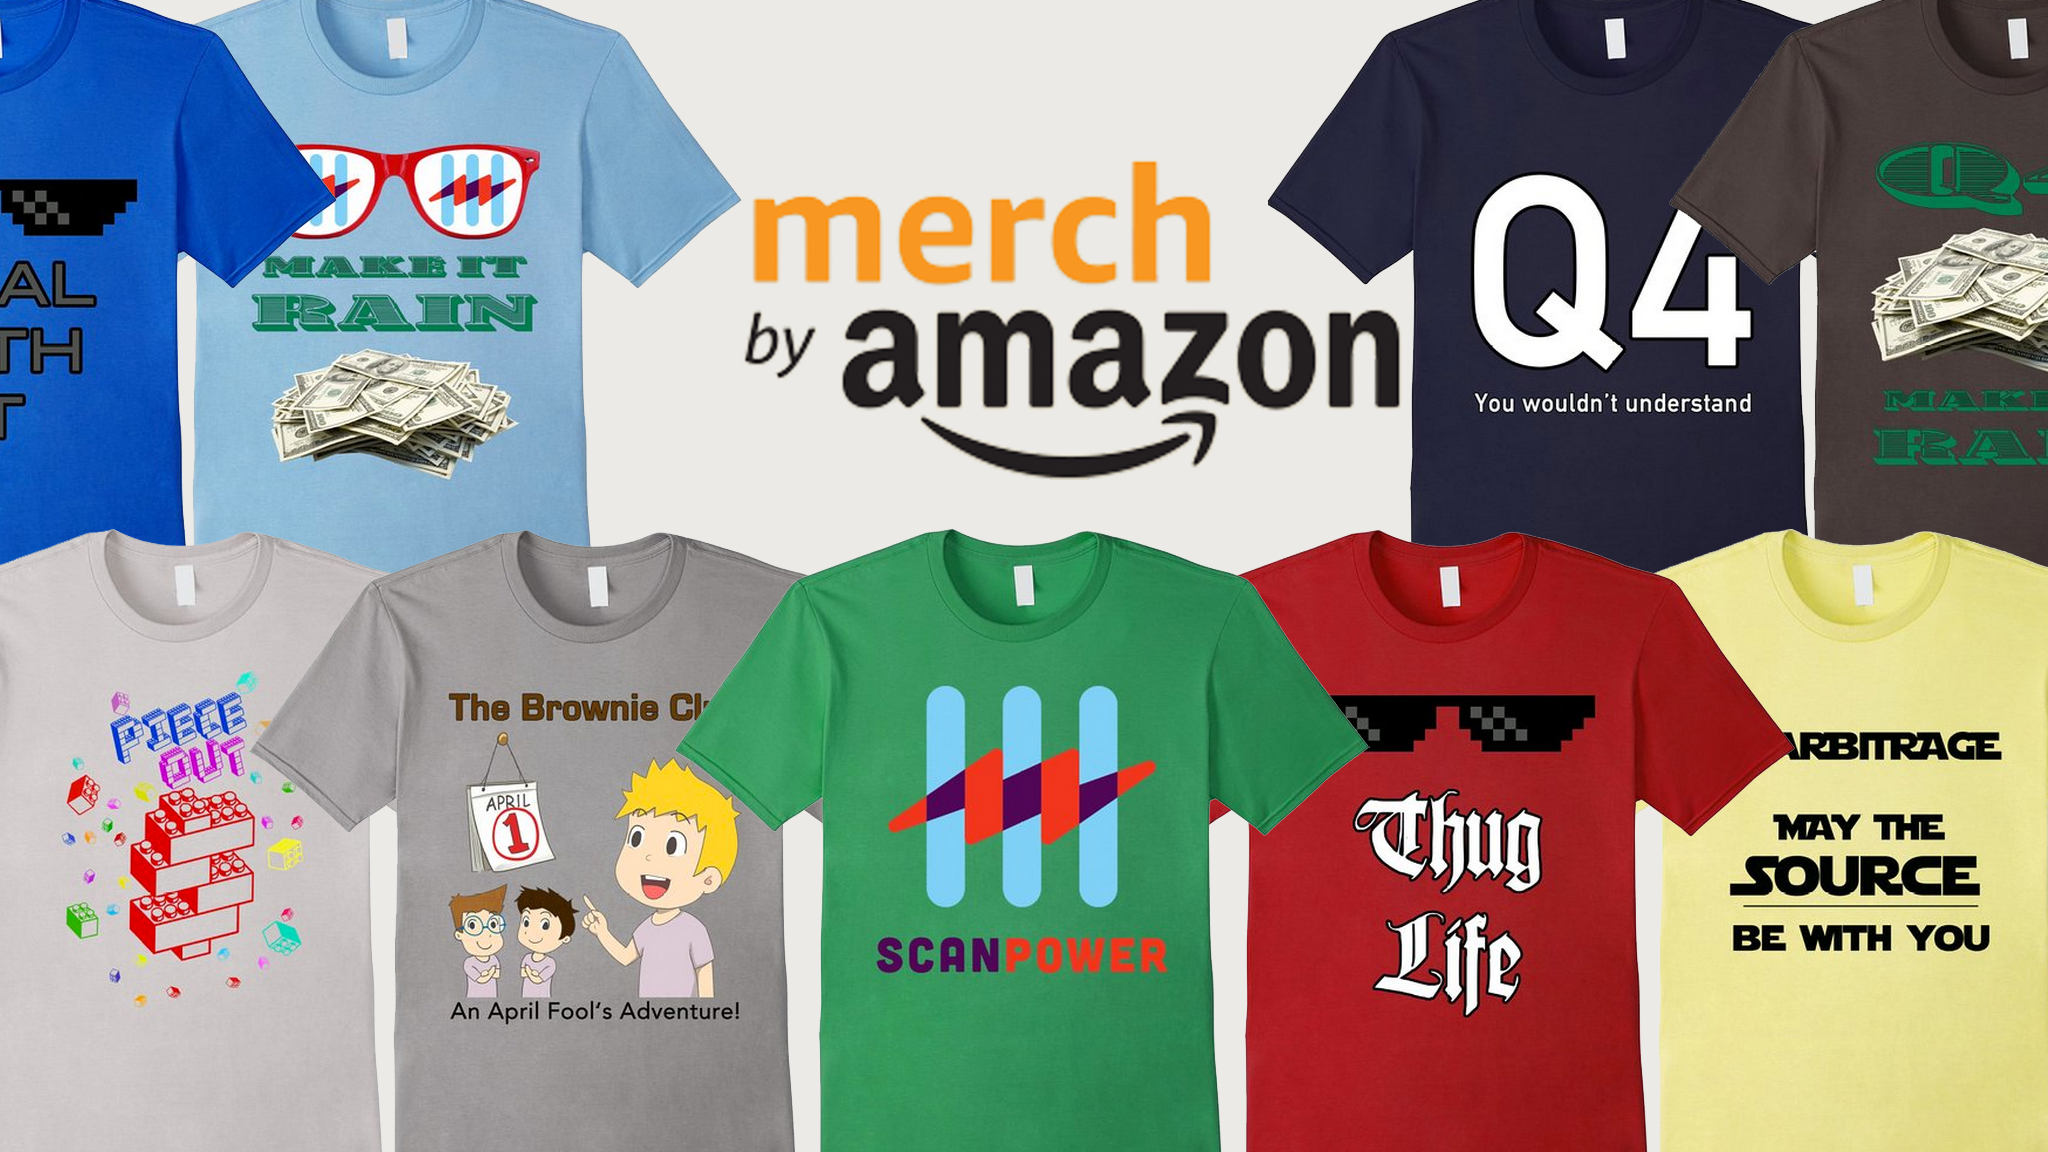 38d73ac0d T-shirt design ready for sale on merch amazon for $8 - SEOClerks